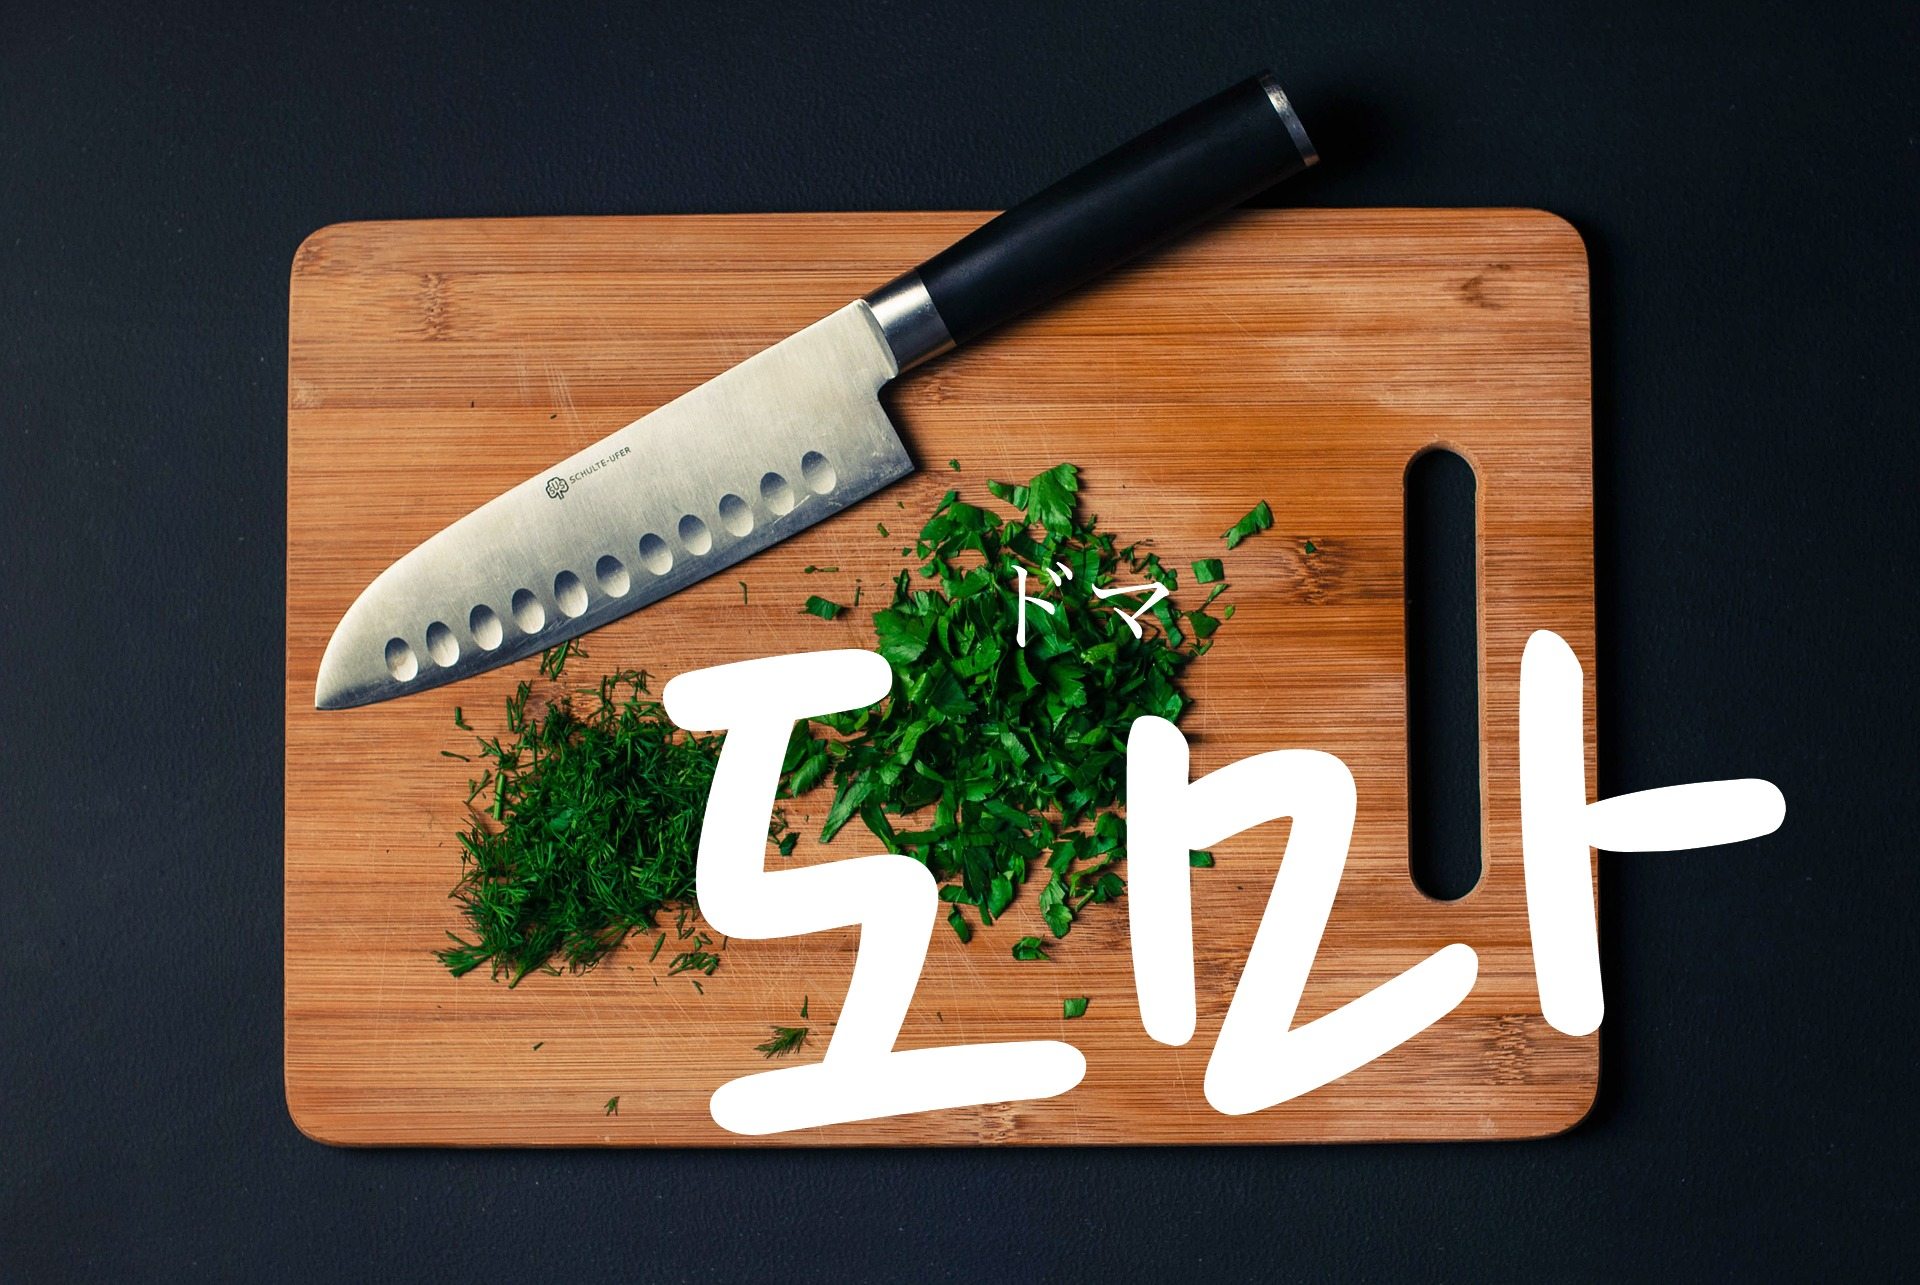 koreanword-cutting-board